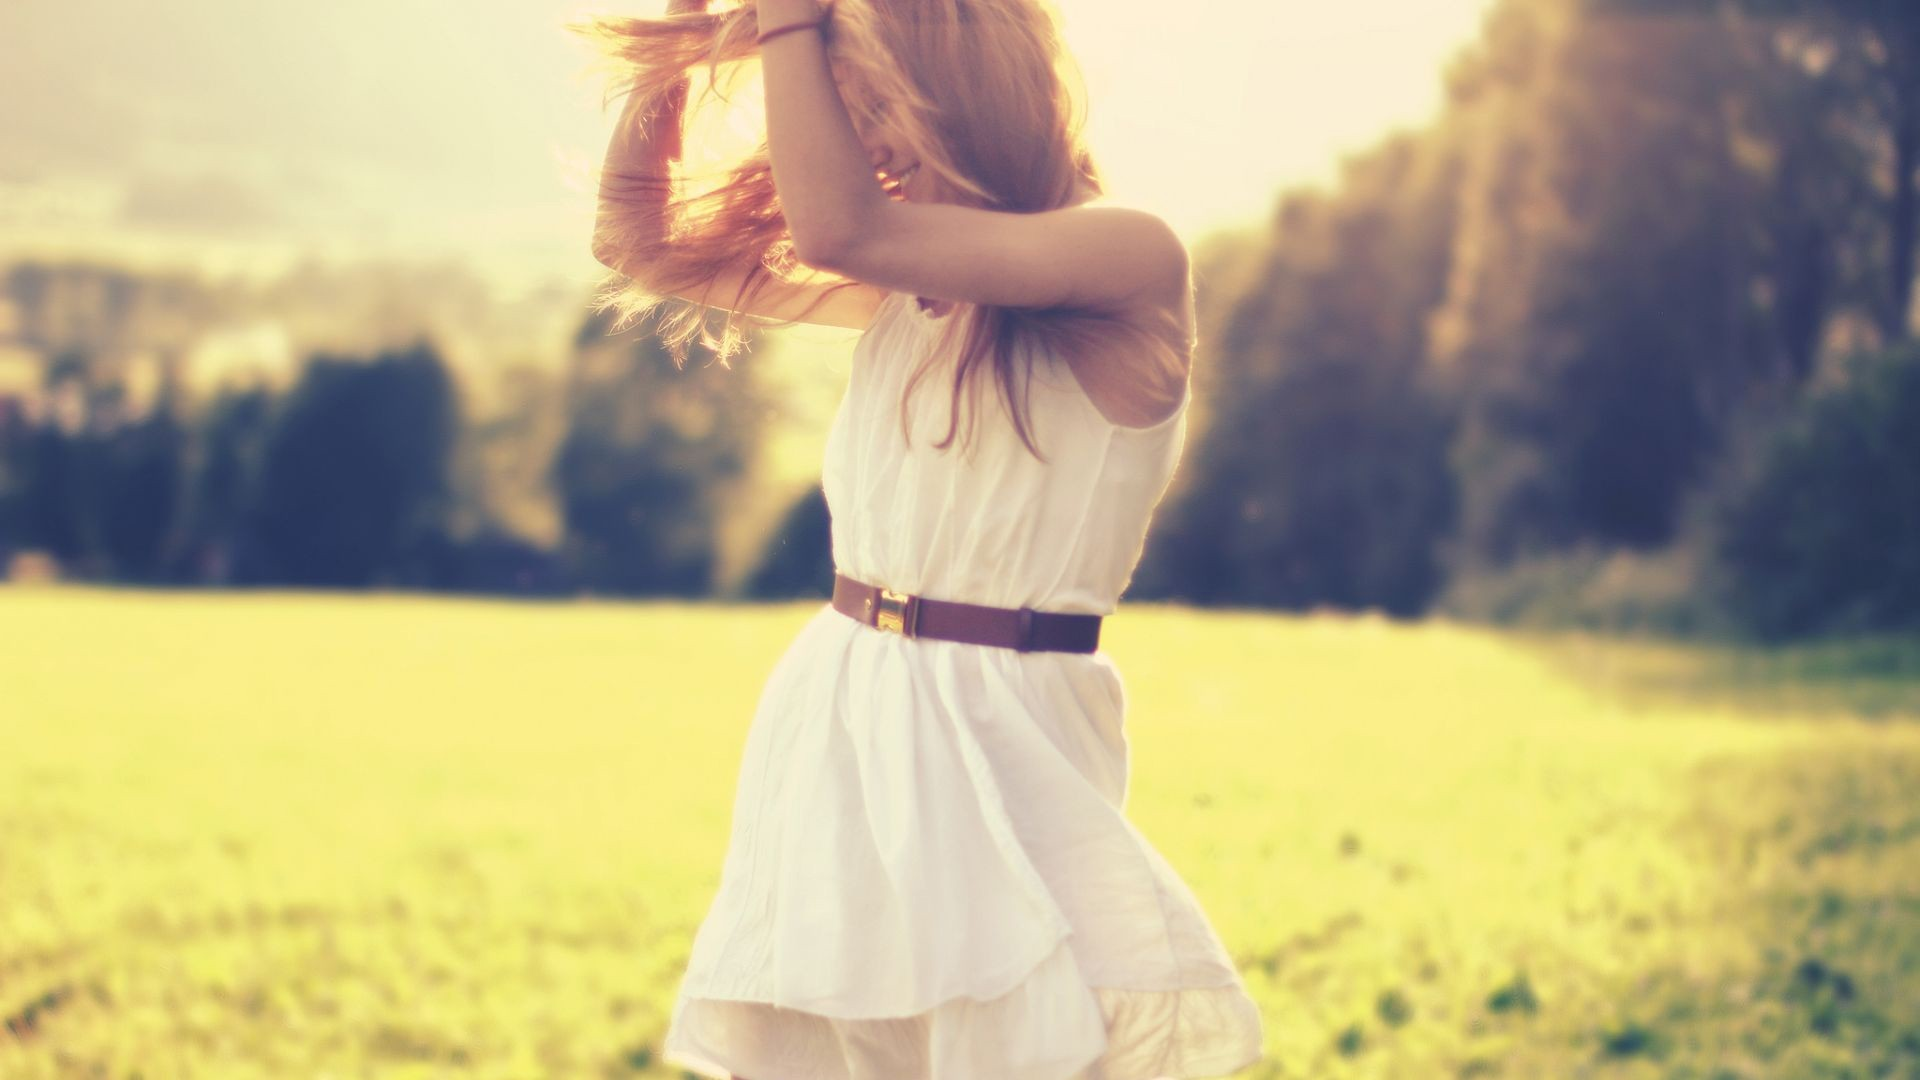 Mood, girl, blonde, alvte, belt, joy, happiness, positive, nature, grass, herbs, trees, sun